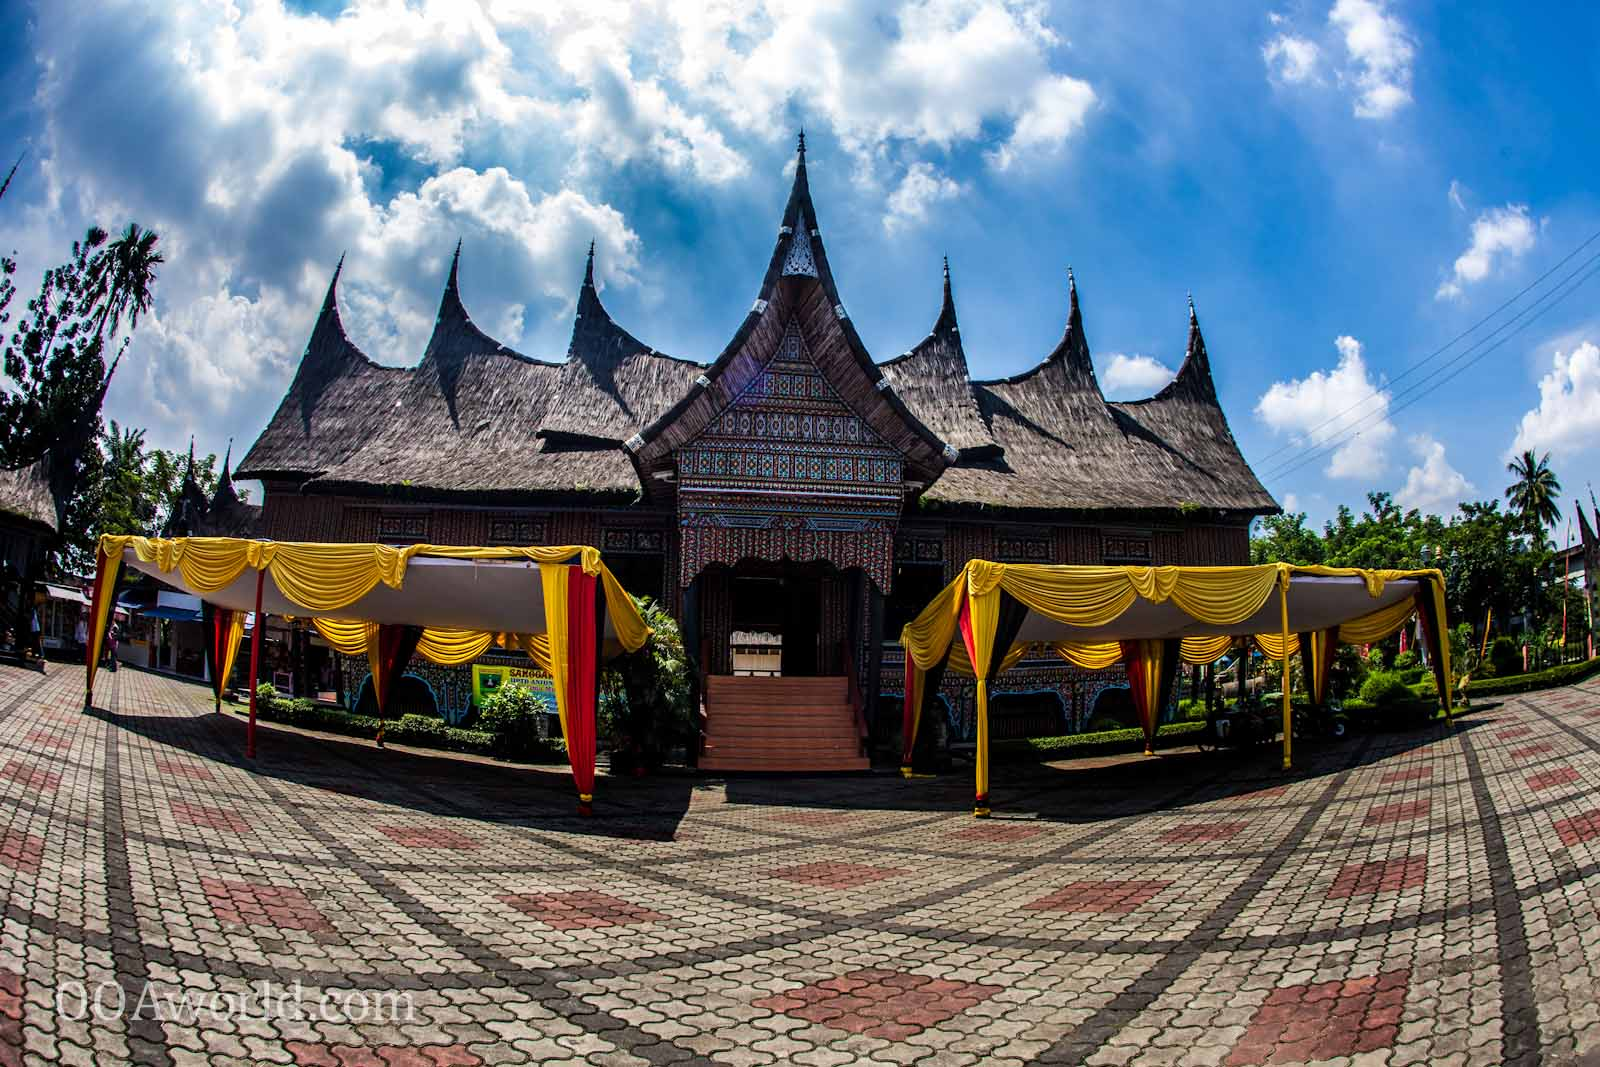 Tmii Jakarta Video Taman Mini Indonesia Indah Beautiful Indonesia